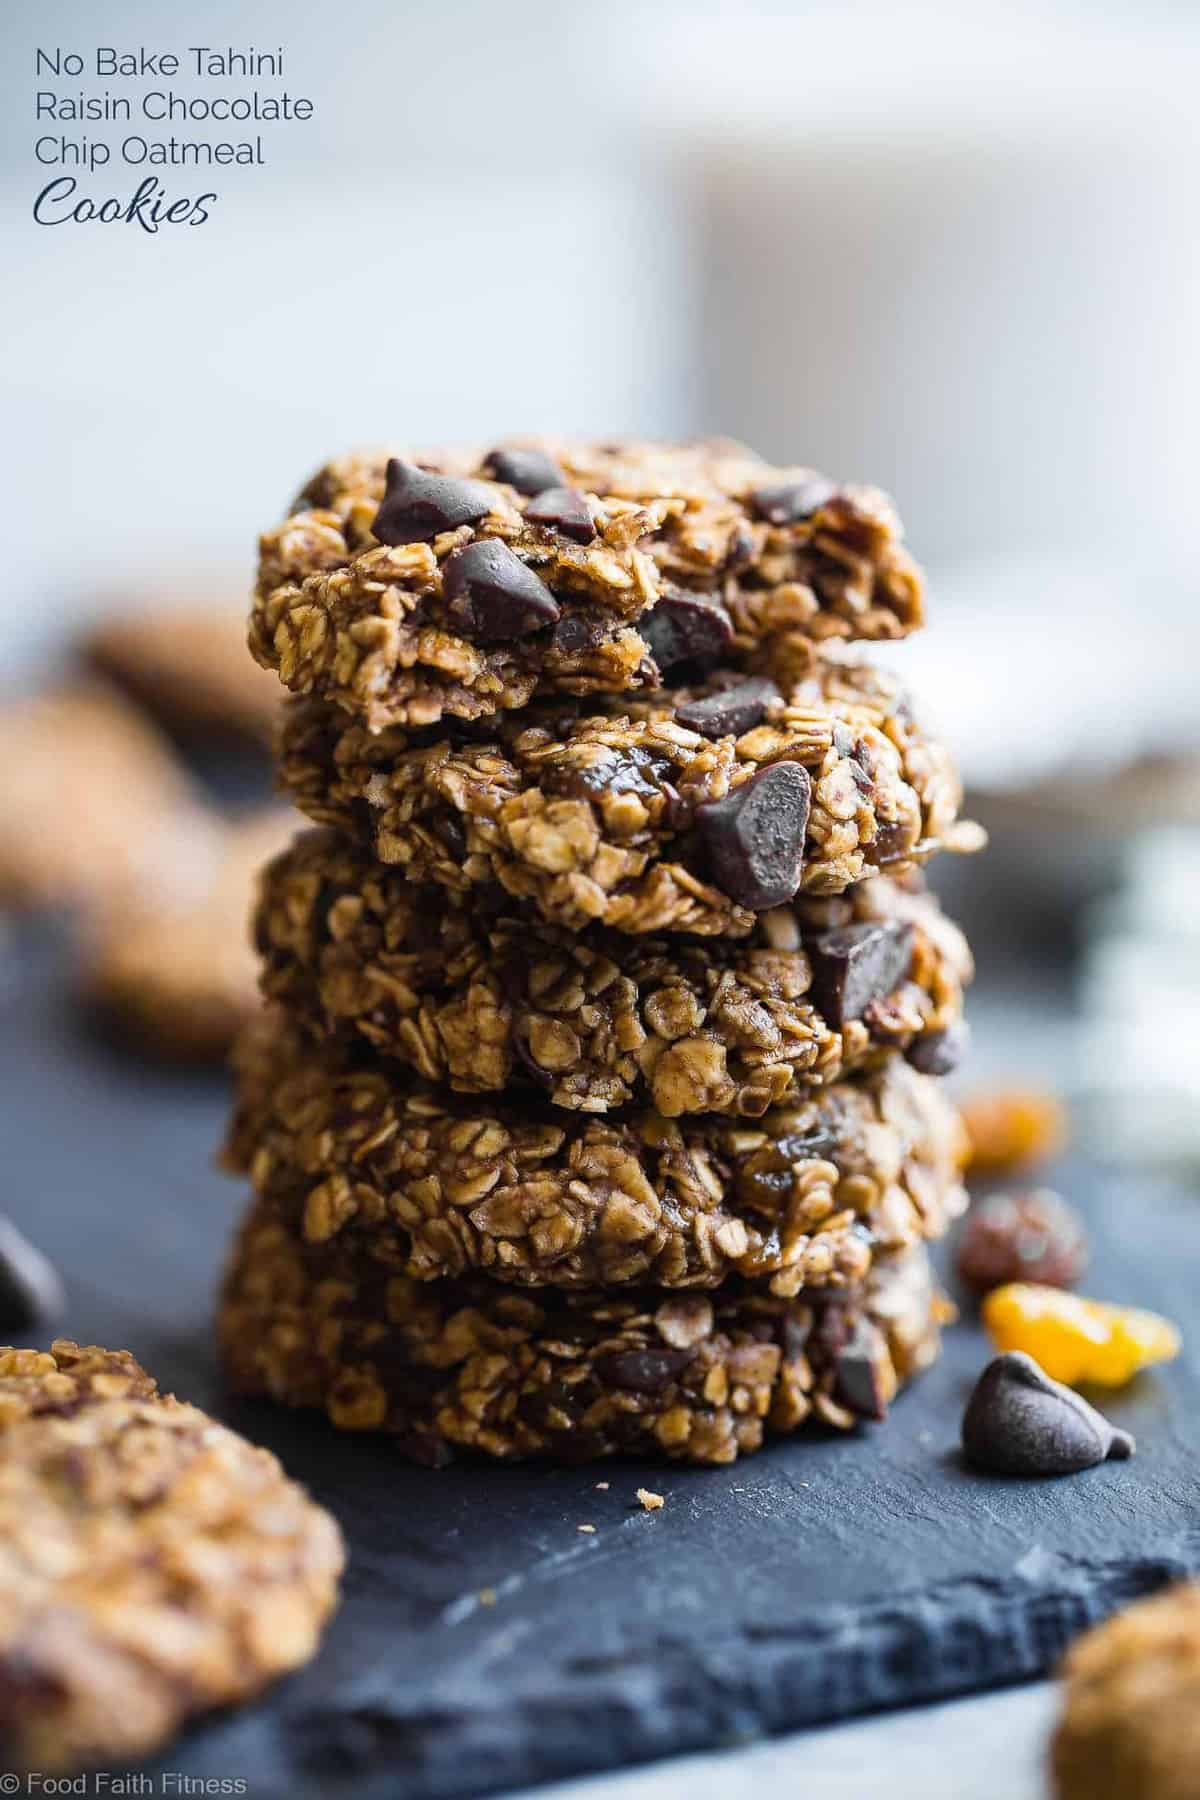 Vegan Gluten Free Oatmeal No Bake Cookies -These EASY, no bake oatmeal cookieshave a surprise tahini twist, chocolate and notes of spicy cardamon and chewy golden raisins! A healthy, gluten/dairy/egg free treat for only 110 calories! | #Foodfaithfitness | #Vegan #NoBake #Healthy #ChocolateChip #Glutenfre